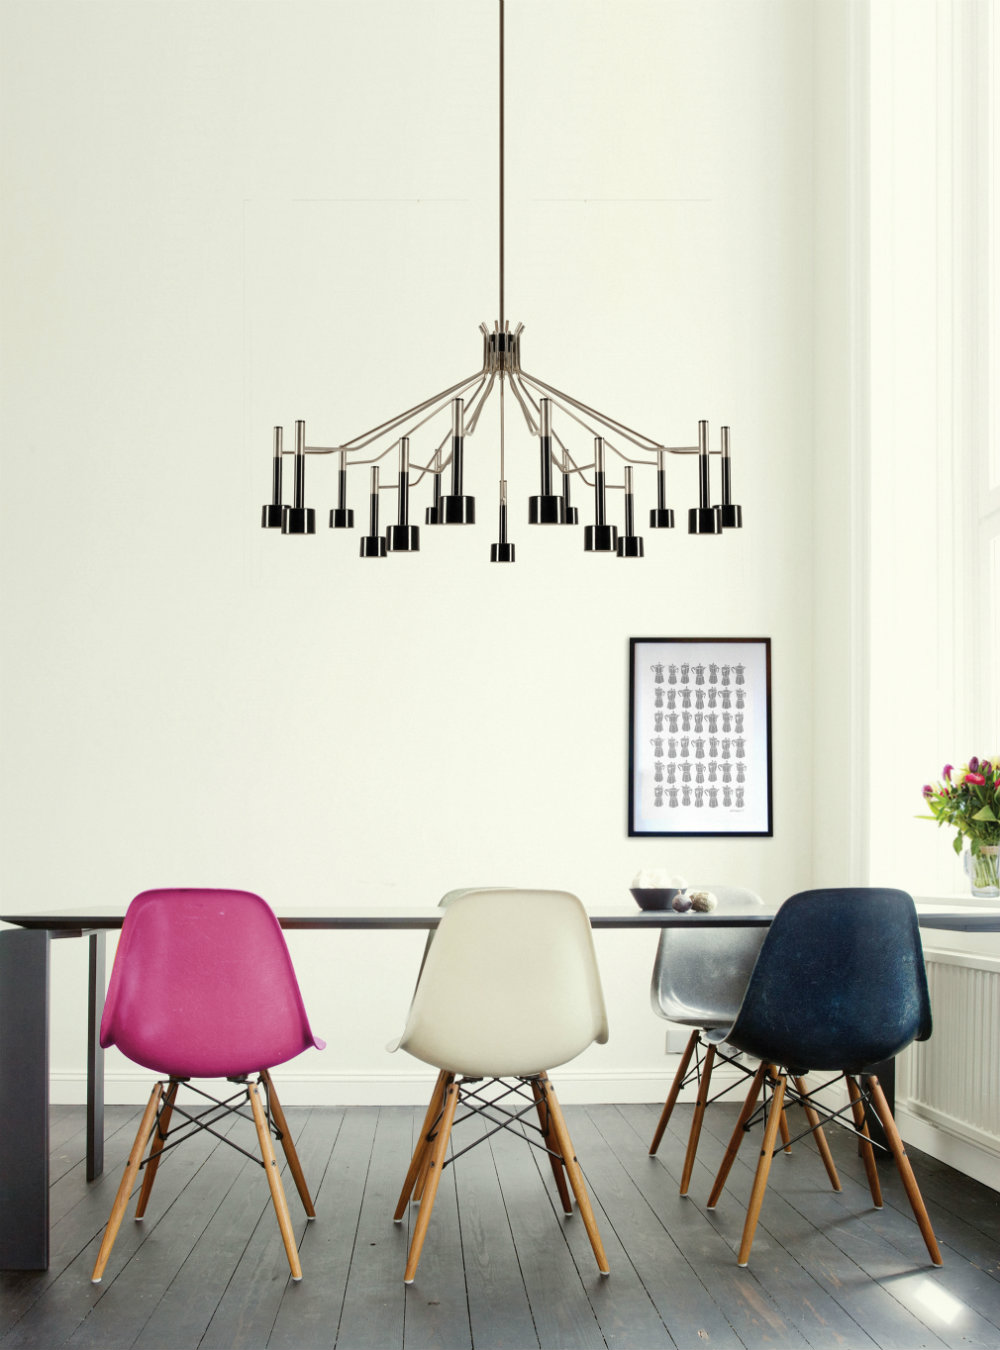 Trending Product An Iconic Round Chandelier with a Mid-Century Design 1 round chandelier Trending Product: An Iconic Round Chandelier with a Mid-Century Design Trending Product An Iconic Round Chandelier with a Mid Century Design 1